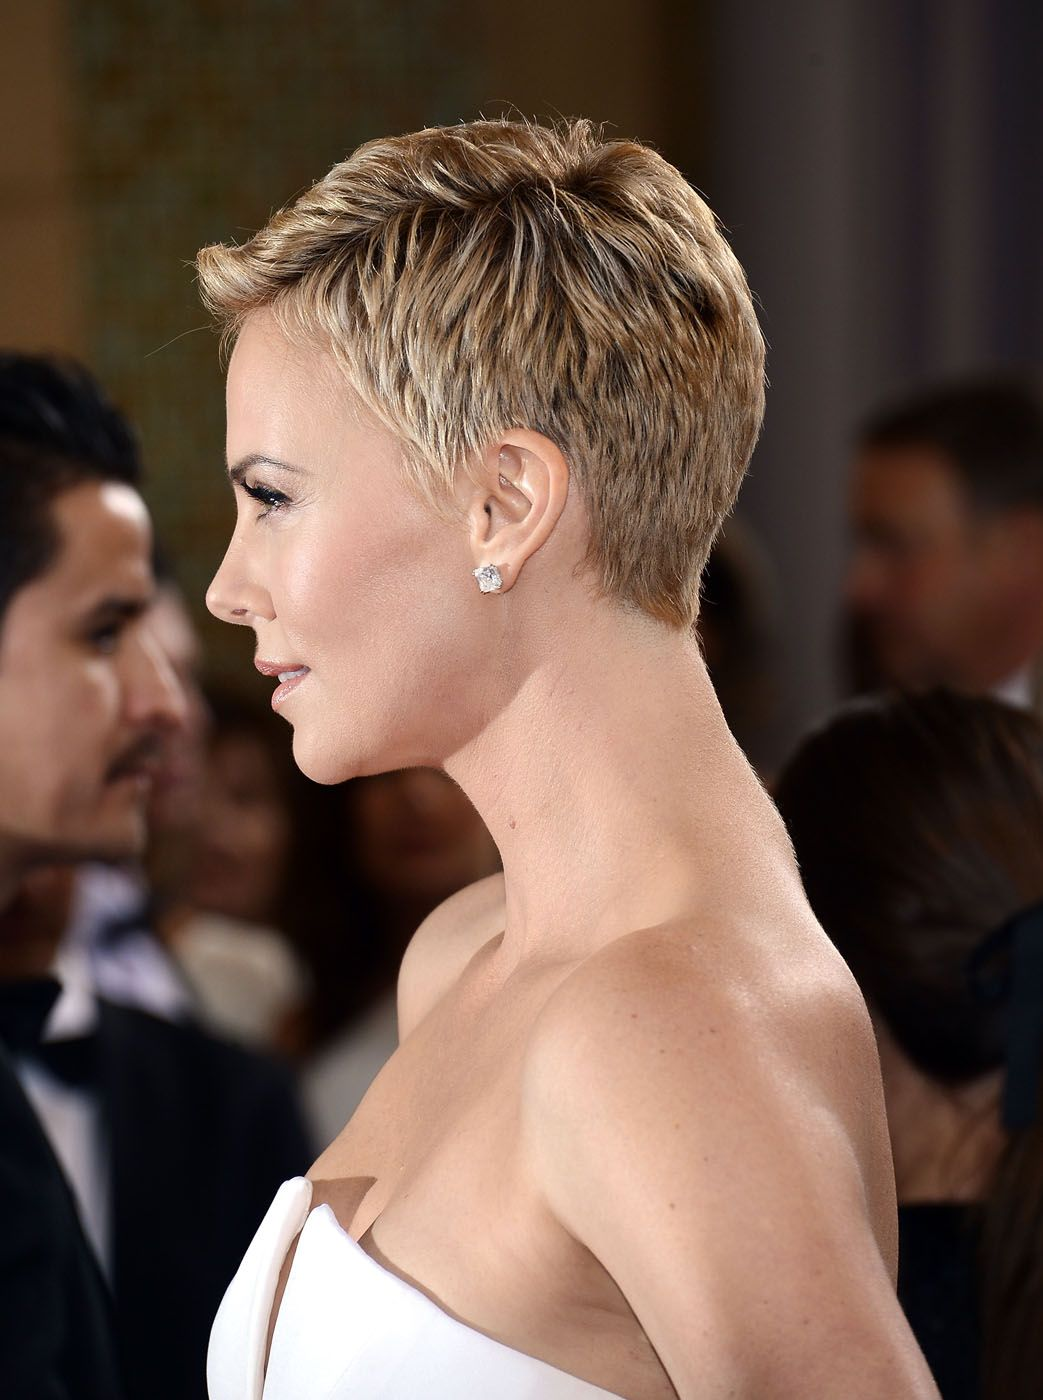 20 Worst Celebrities Hairstyles | Pouted.com